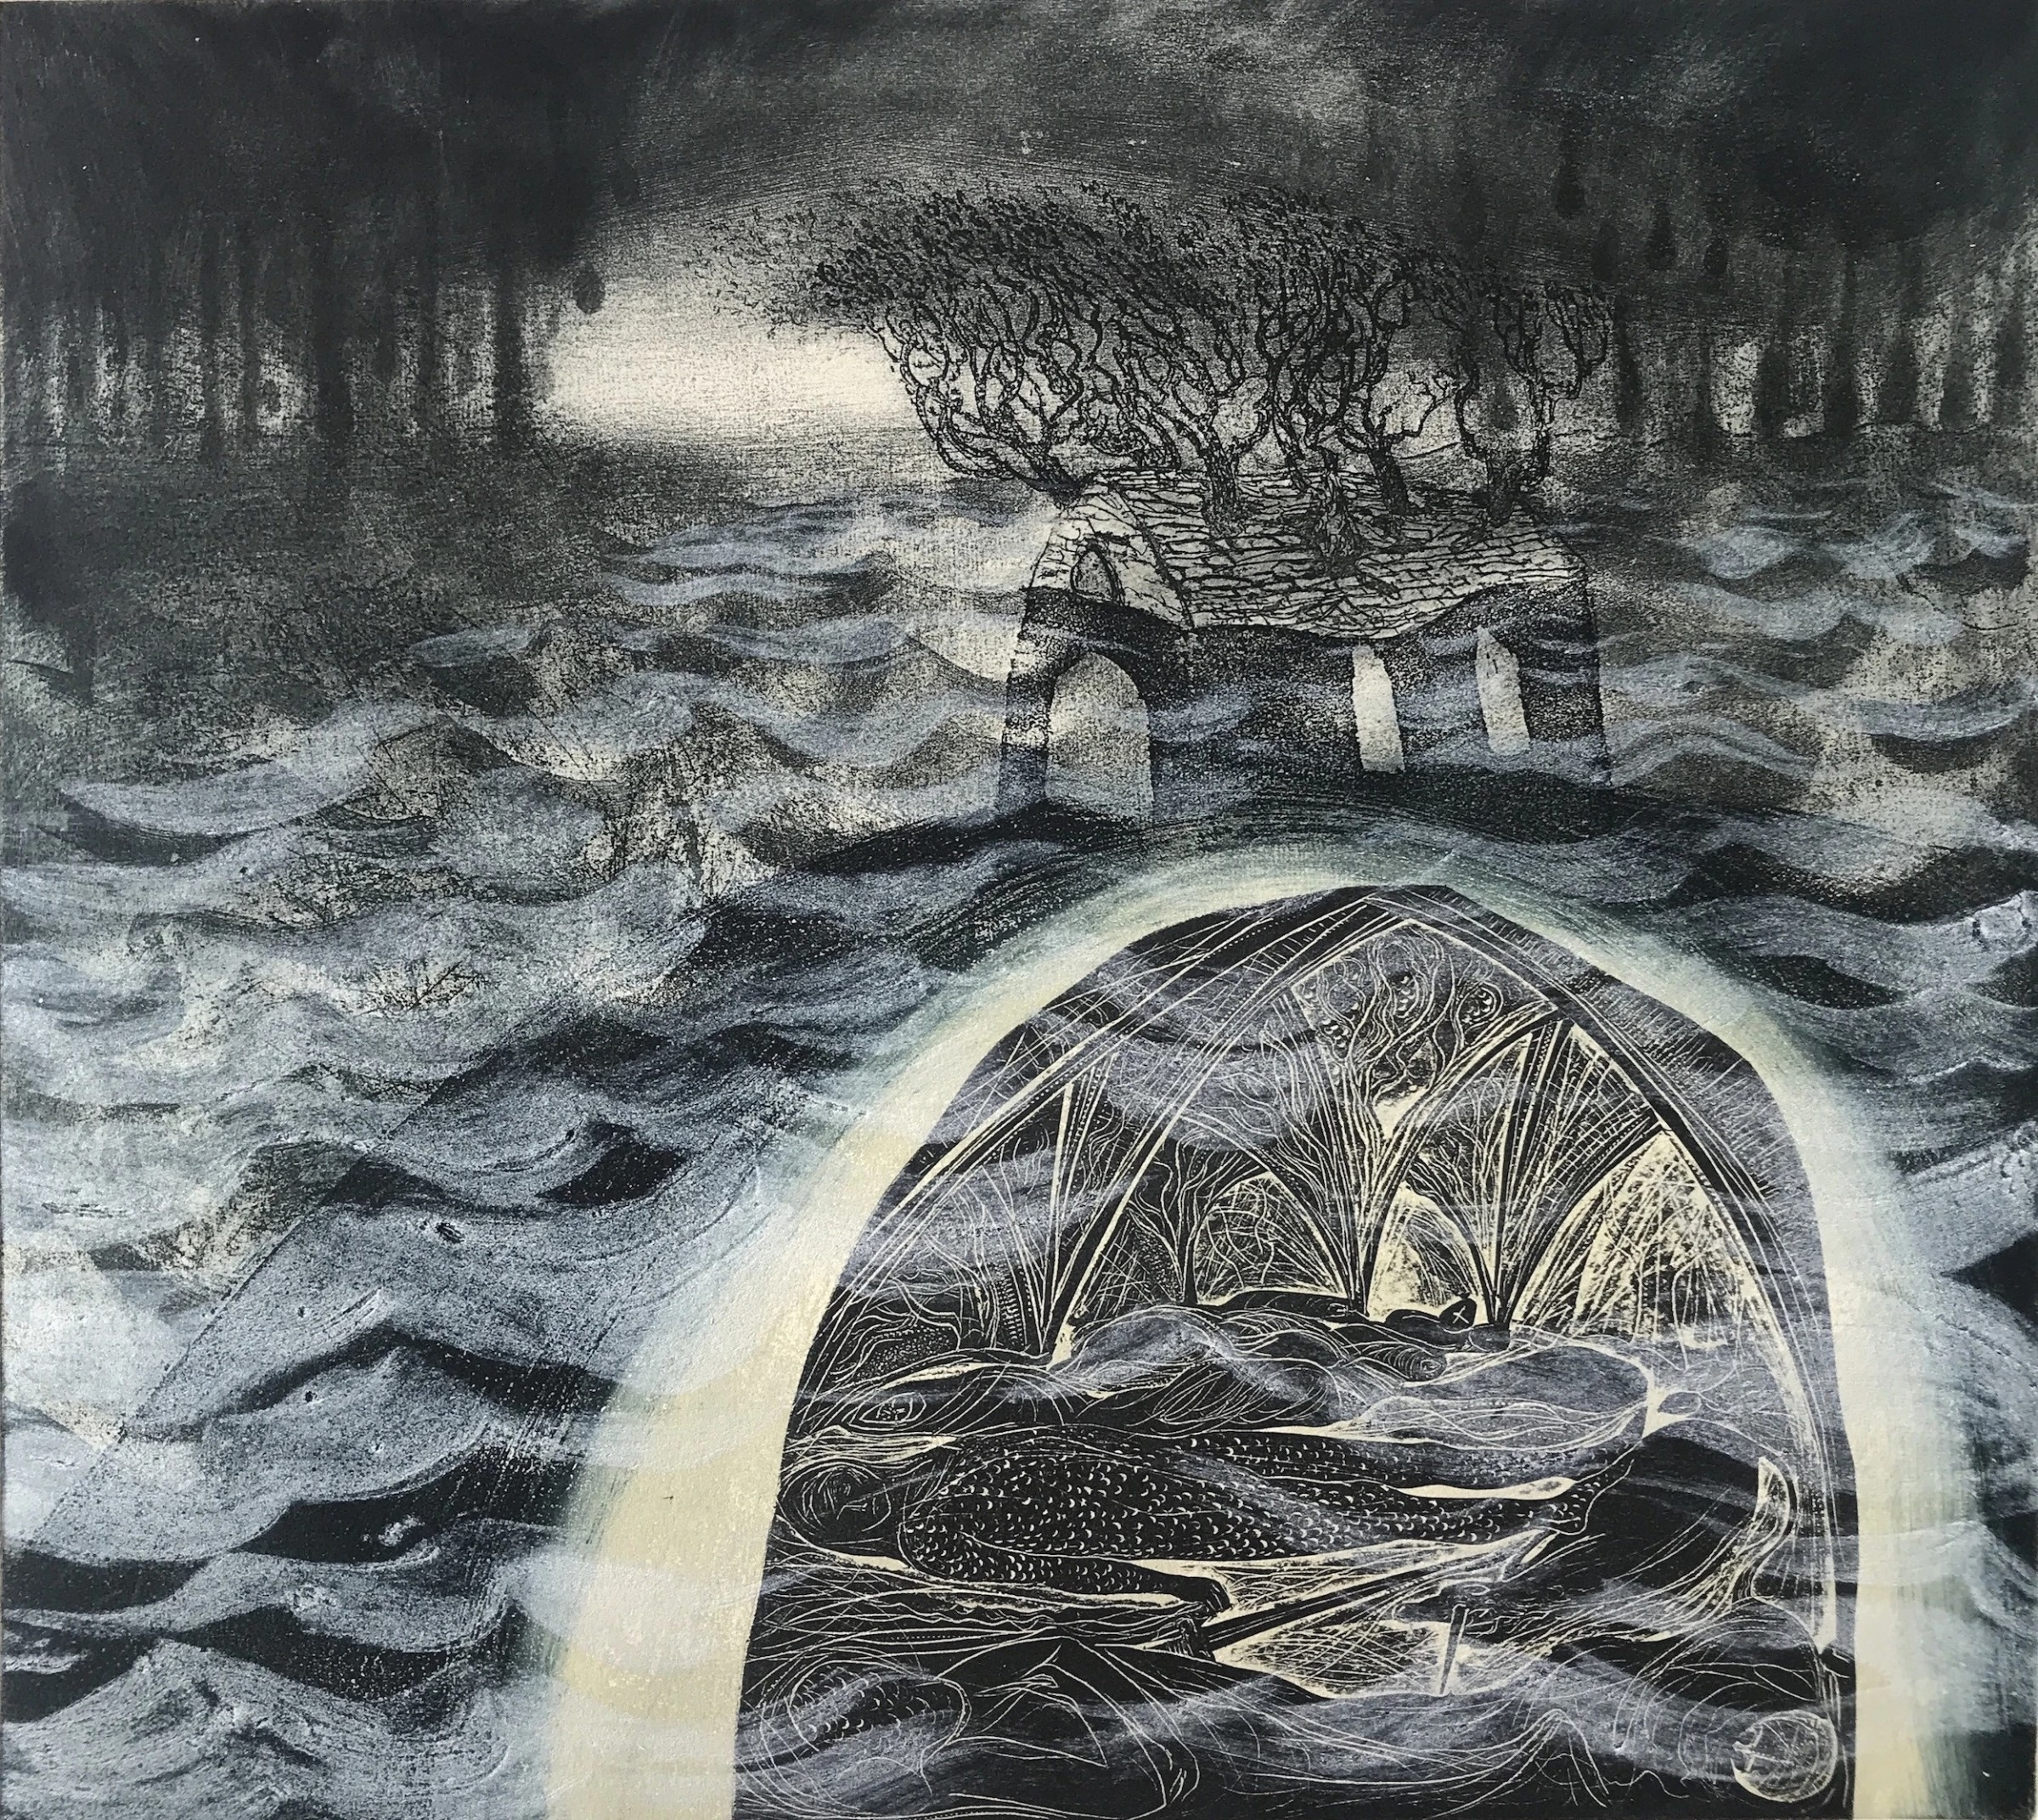 """<span class=""""link fancybox-details-link""""><a href=""""/exhibitions/17/works/image_standalone607/"""">View Detail Page</a></span><p><strong>Flora McLachlan</strong></p><p>The Sleepers under the Flood</p><p>etching, block print & carborundum, edition of 12</p><p>56 x 62cm</p><p>£360 framed</p><p>£280 unframed</p>"""